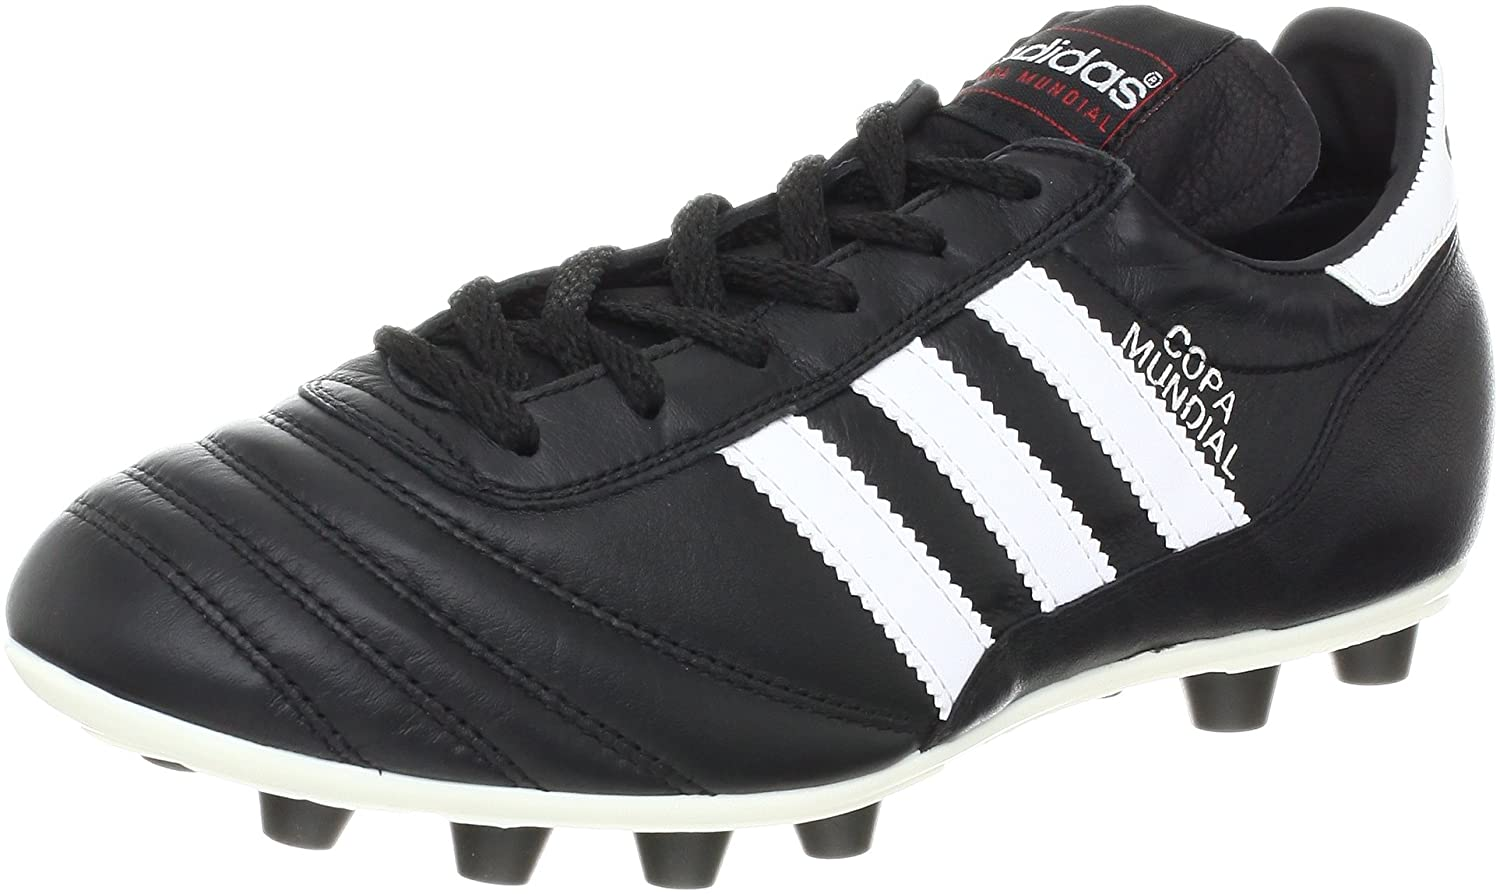 ADIDAS Copa Mundial Fester Boden Classic Fußballstiefel